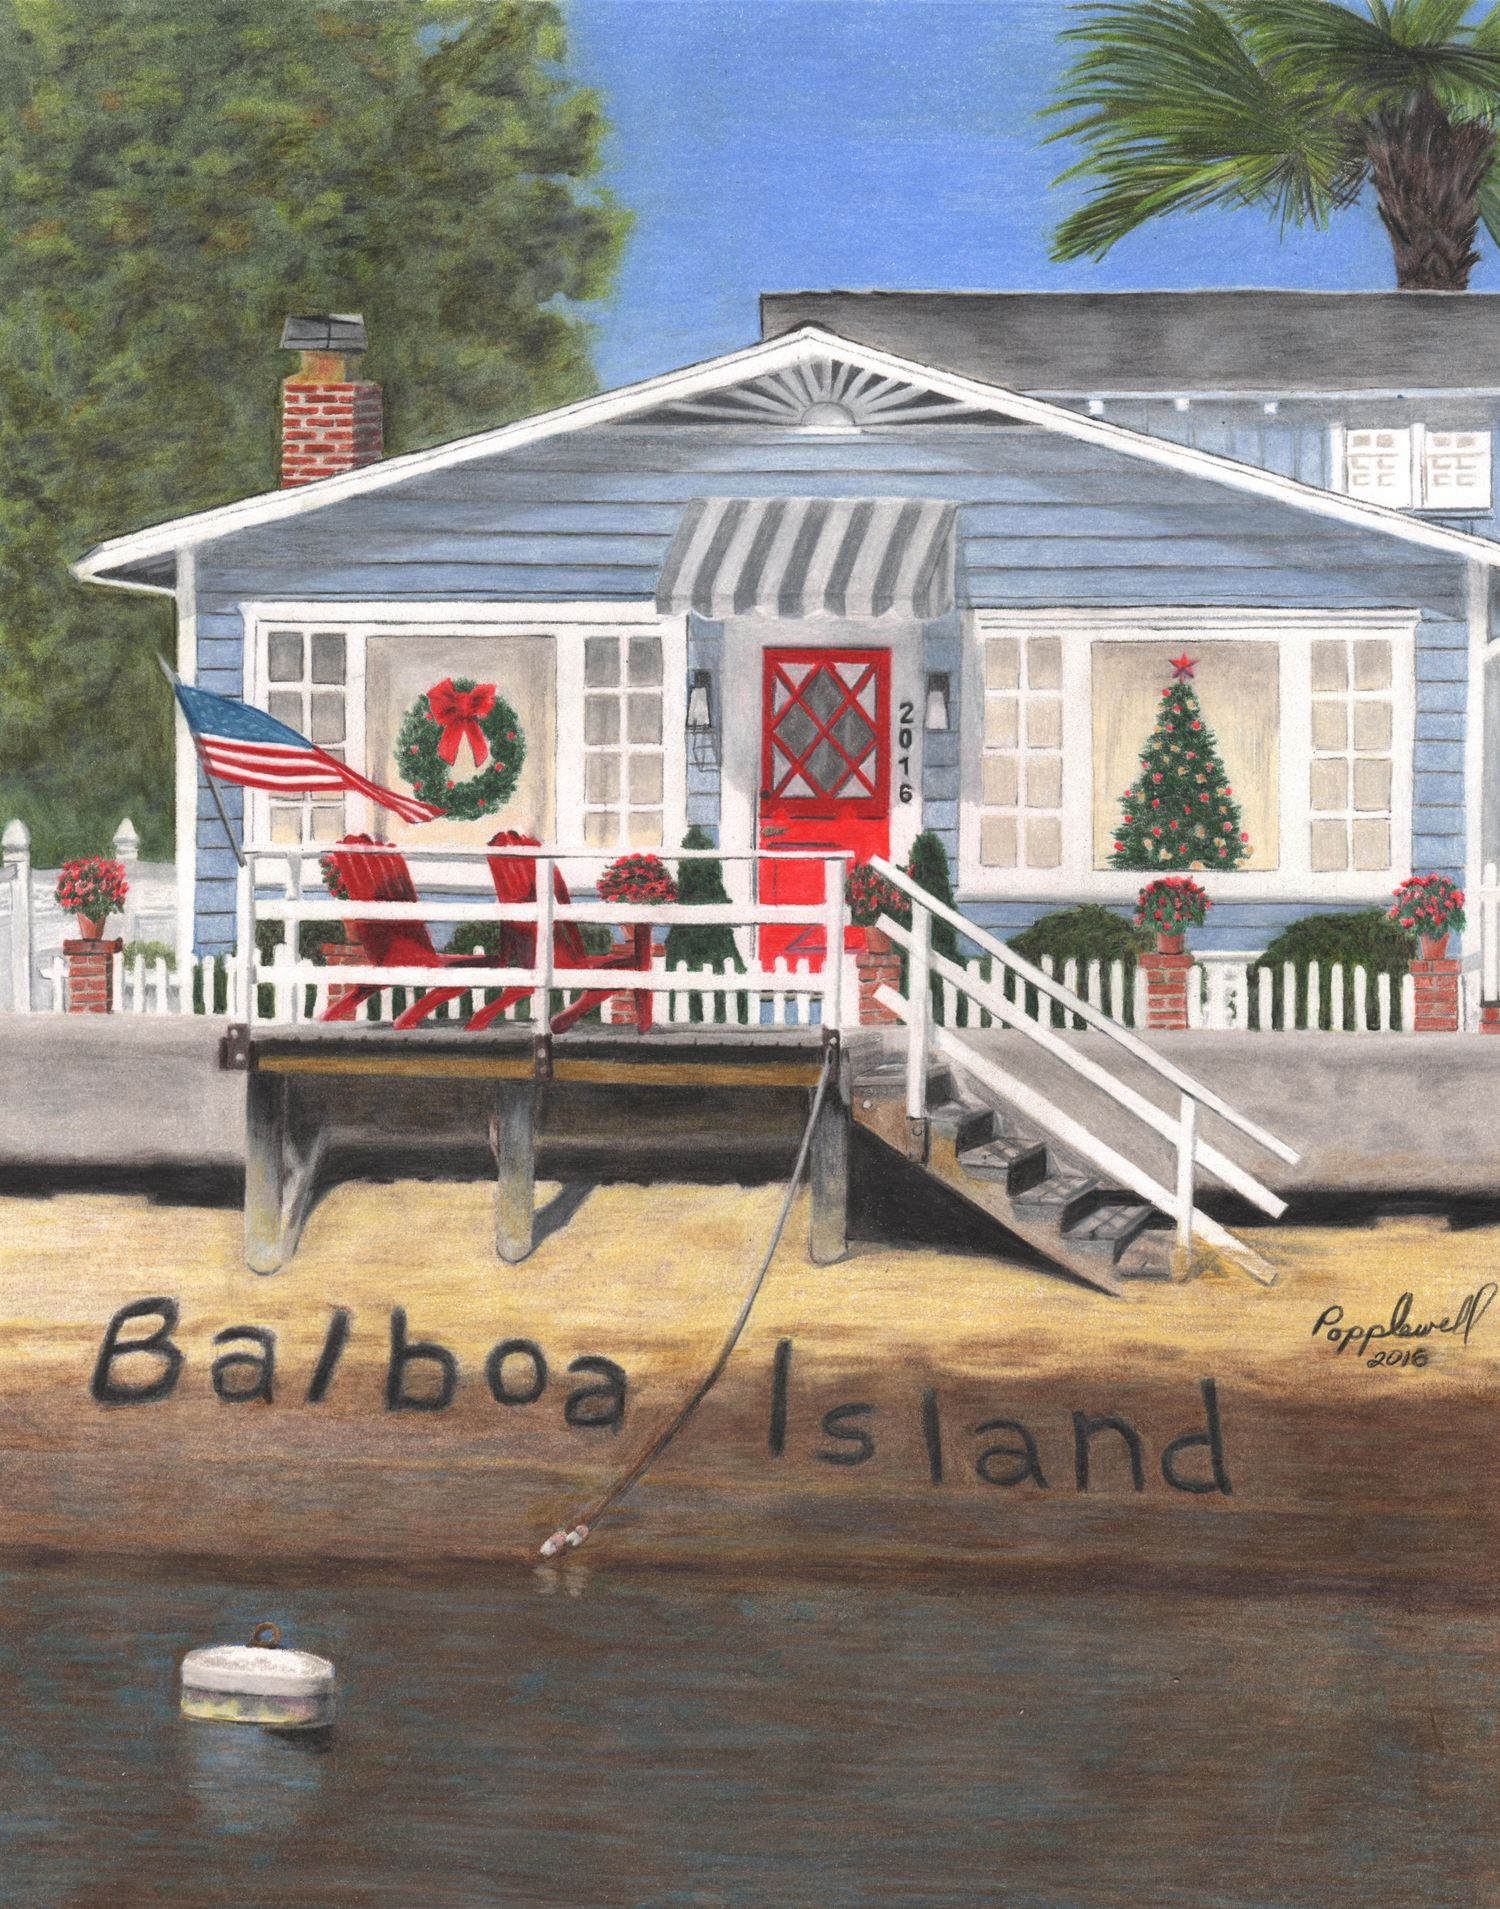 Each year a local artist is asked to paint a picture of a home that represents Balboa Island and the holidays. This year Tom Popplewell, an artist who lives on Balboa Island, painted our picture using colored pencils. That original painting will be raffled off at the Balboa Island Museum on the day of the Tour.